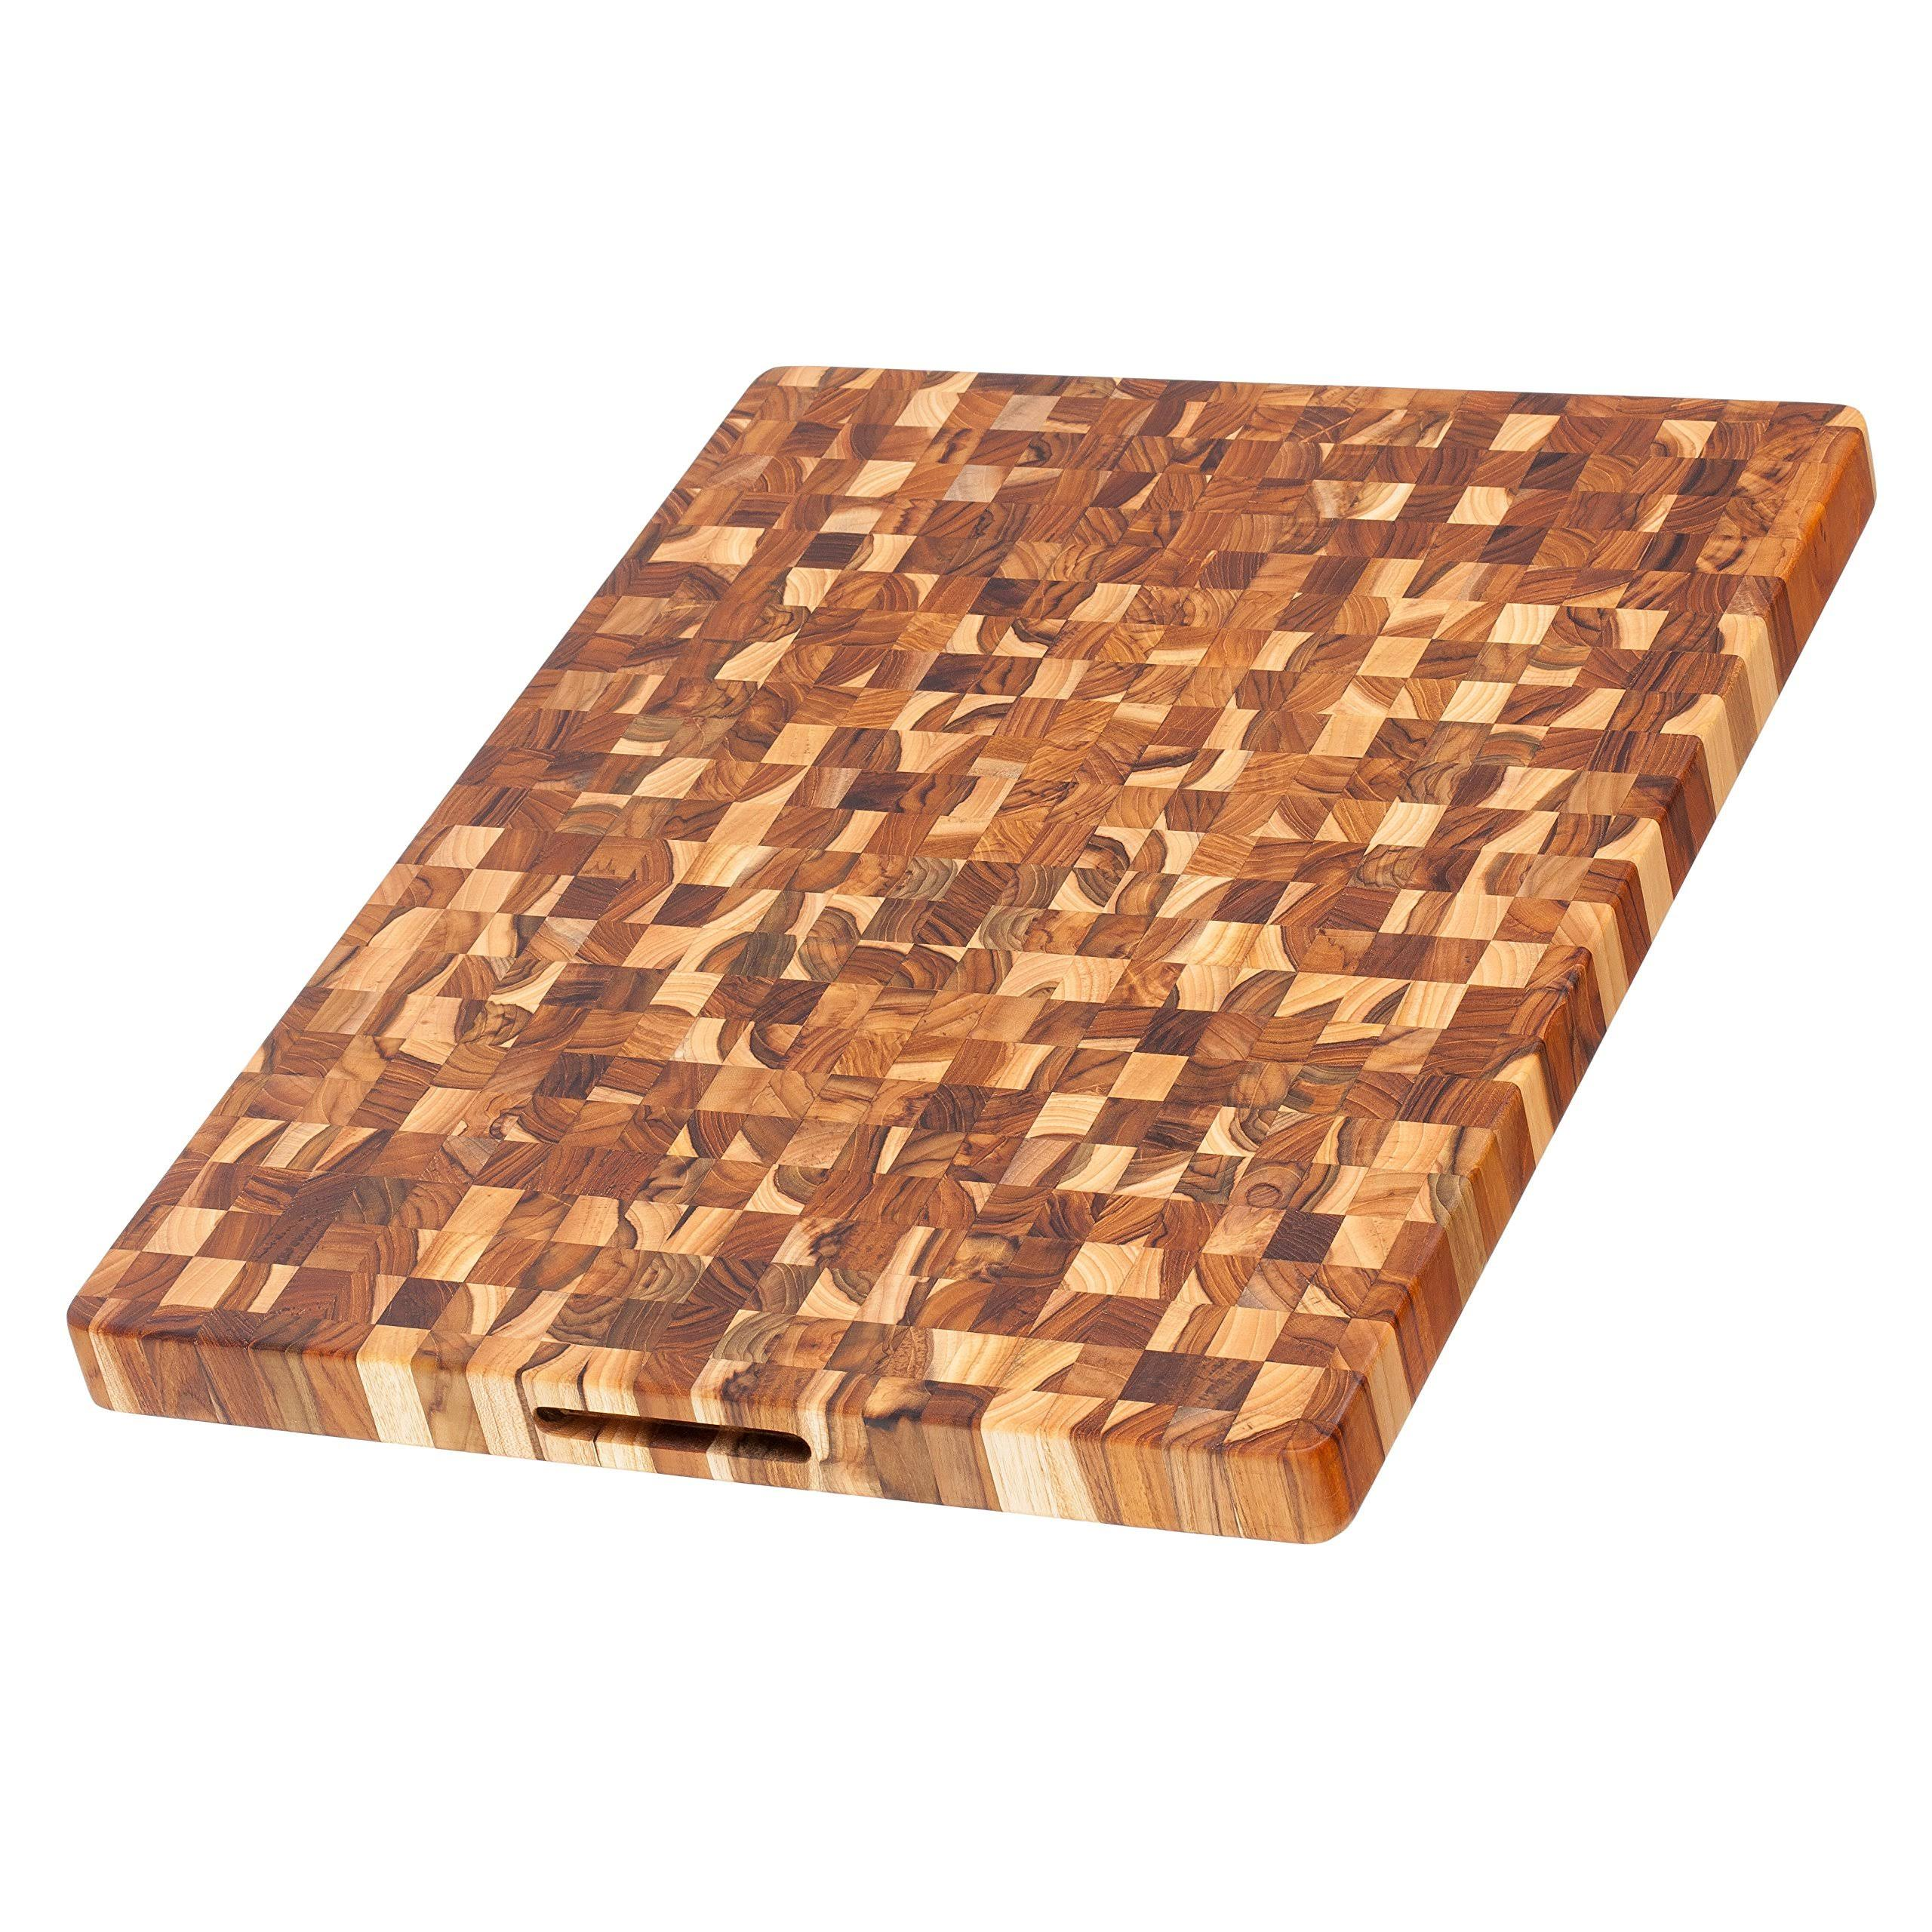 "Proteak Rectangle End Grain Cutting Board - 24"" x 18"" x 1.5"""